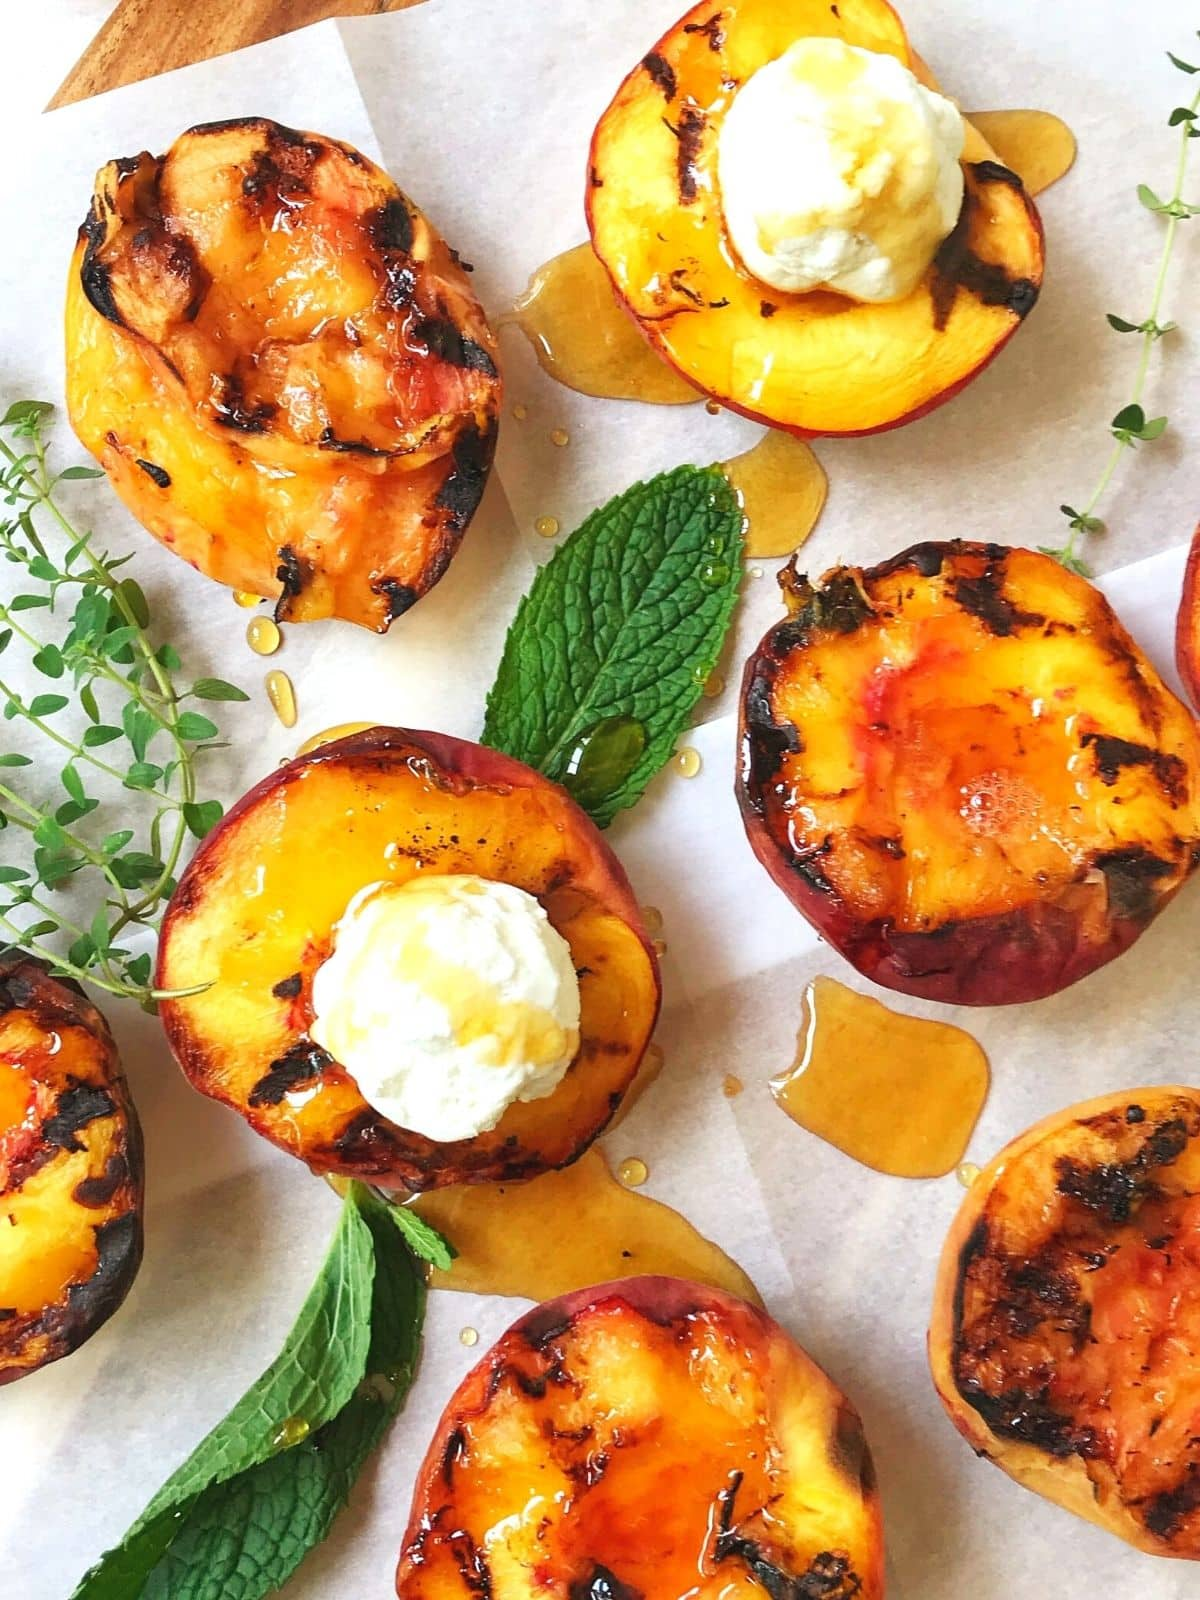 peaches garnished with goat cheese and honey.